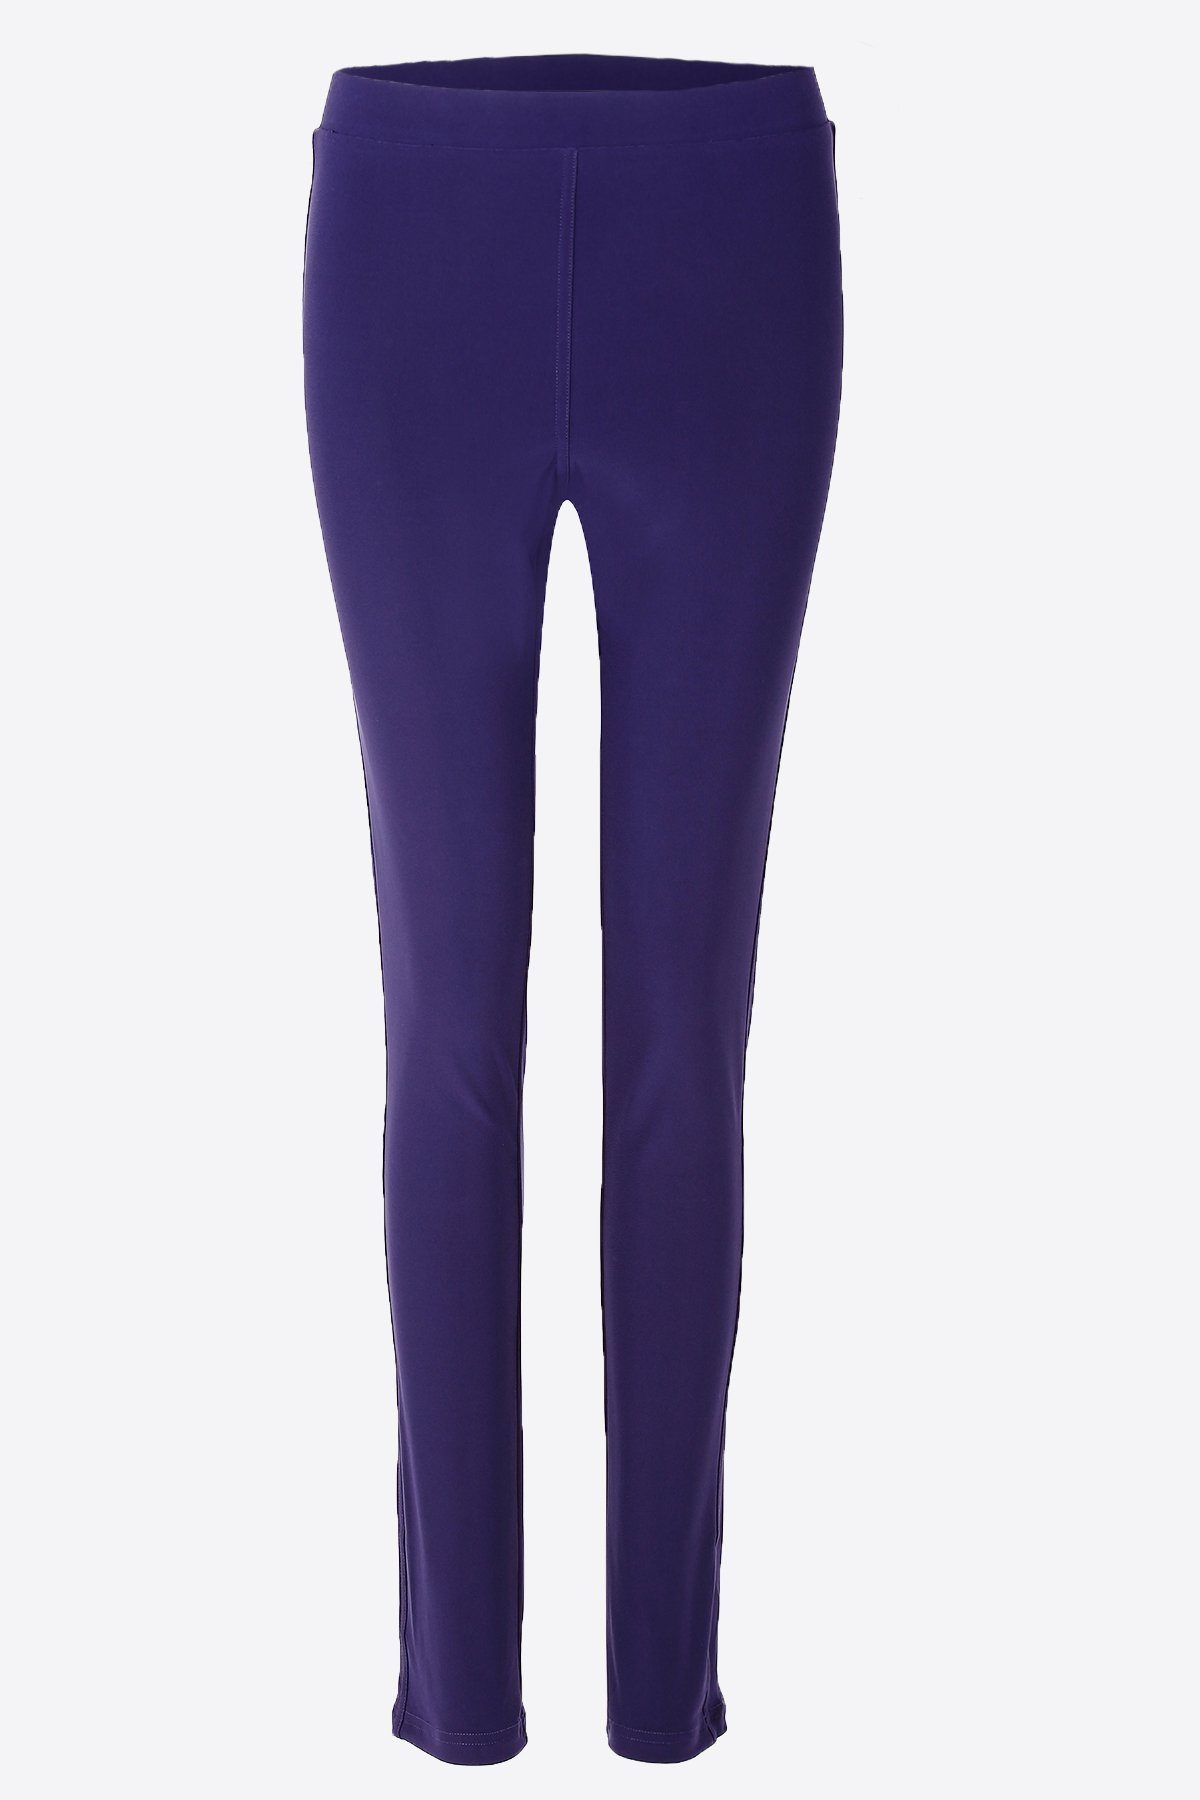 Cropped Leggings - Women's Clothing -ROSARINI